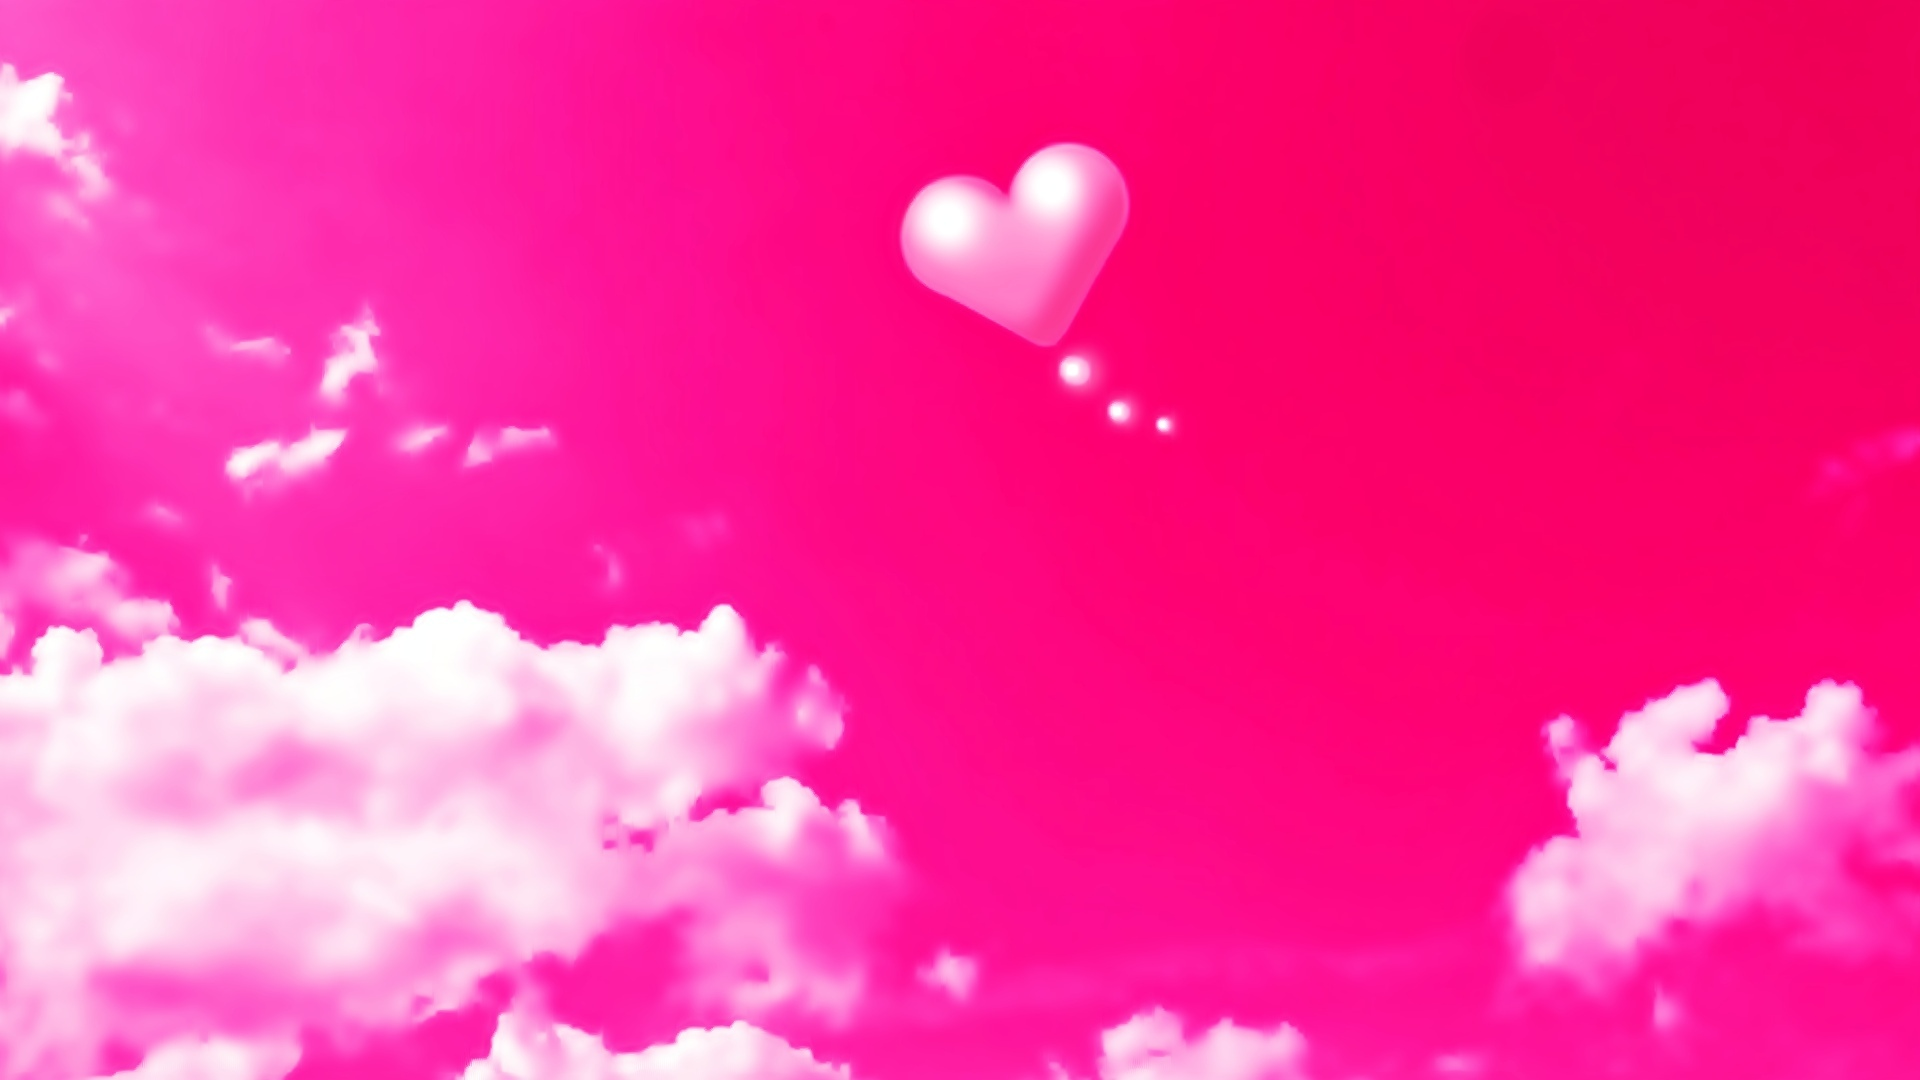 Pink Love Background - WallpaperSafari